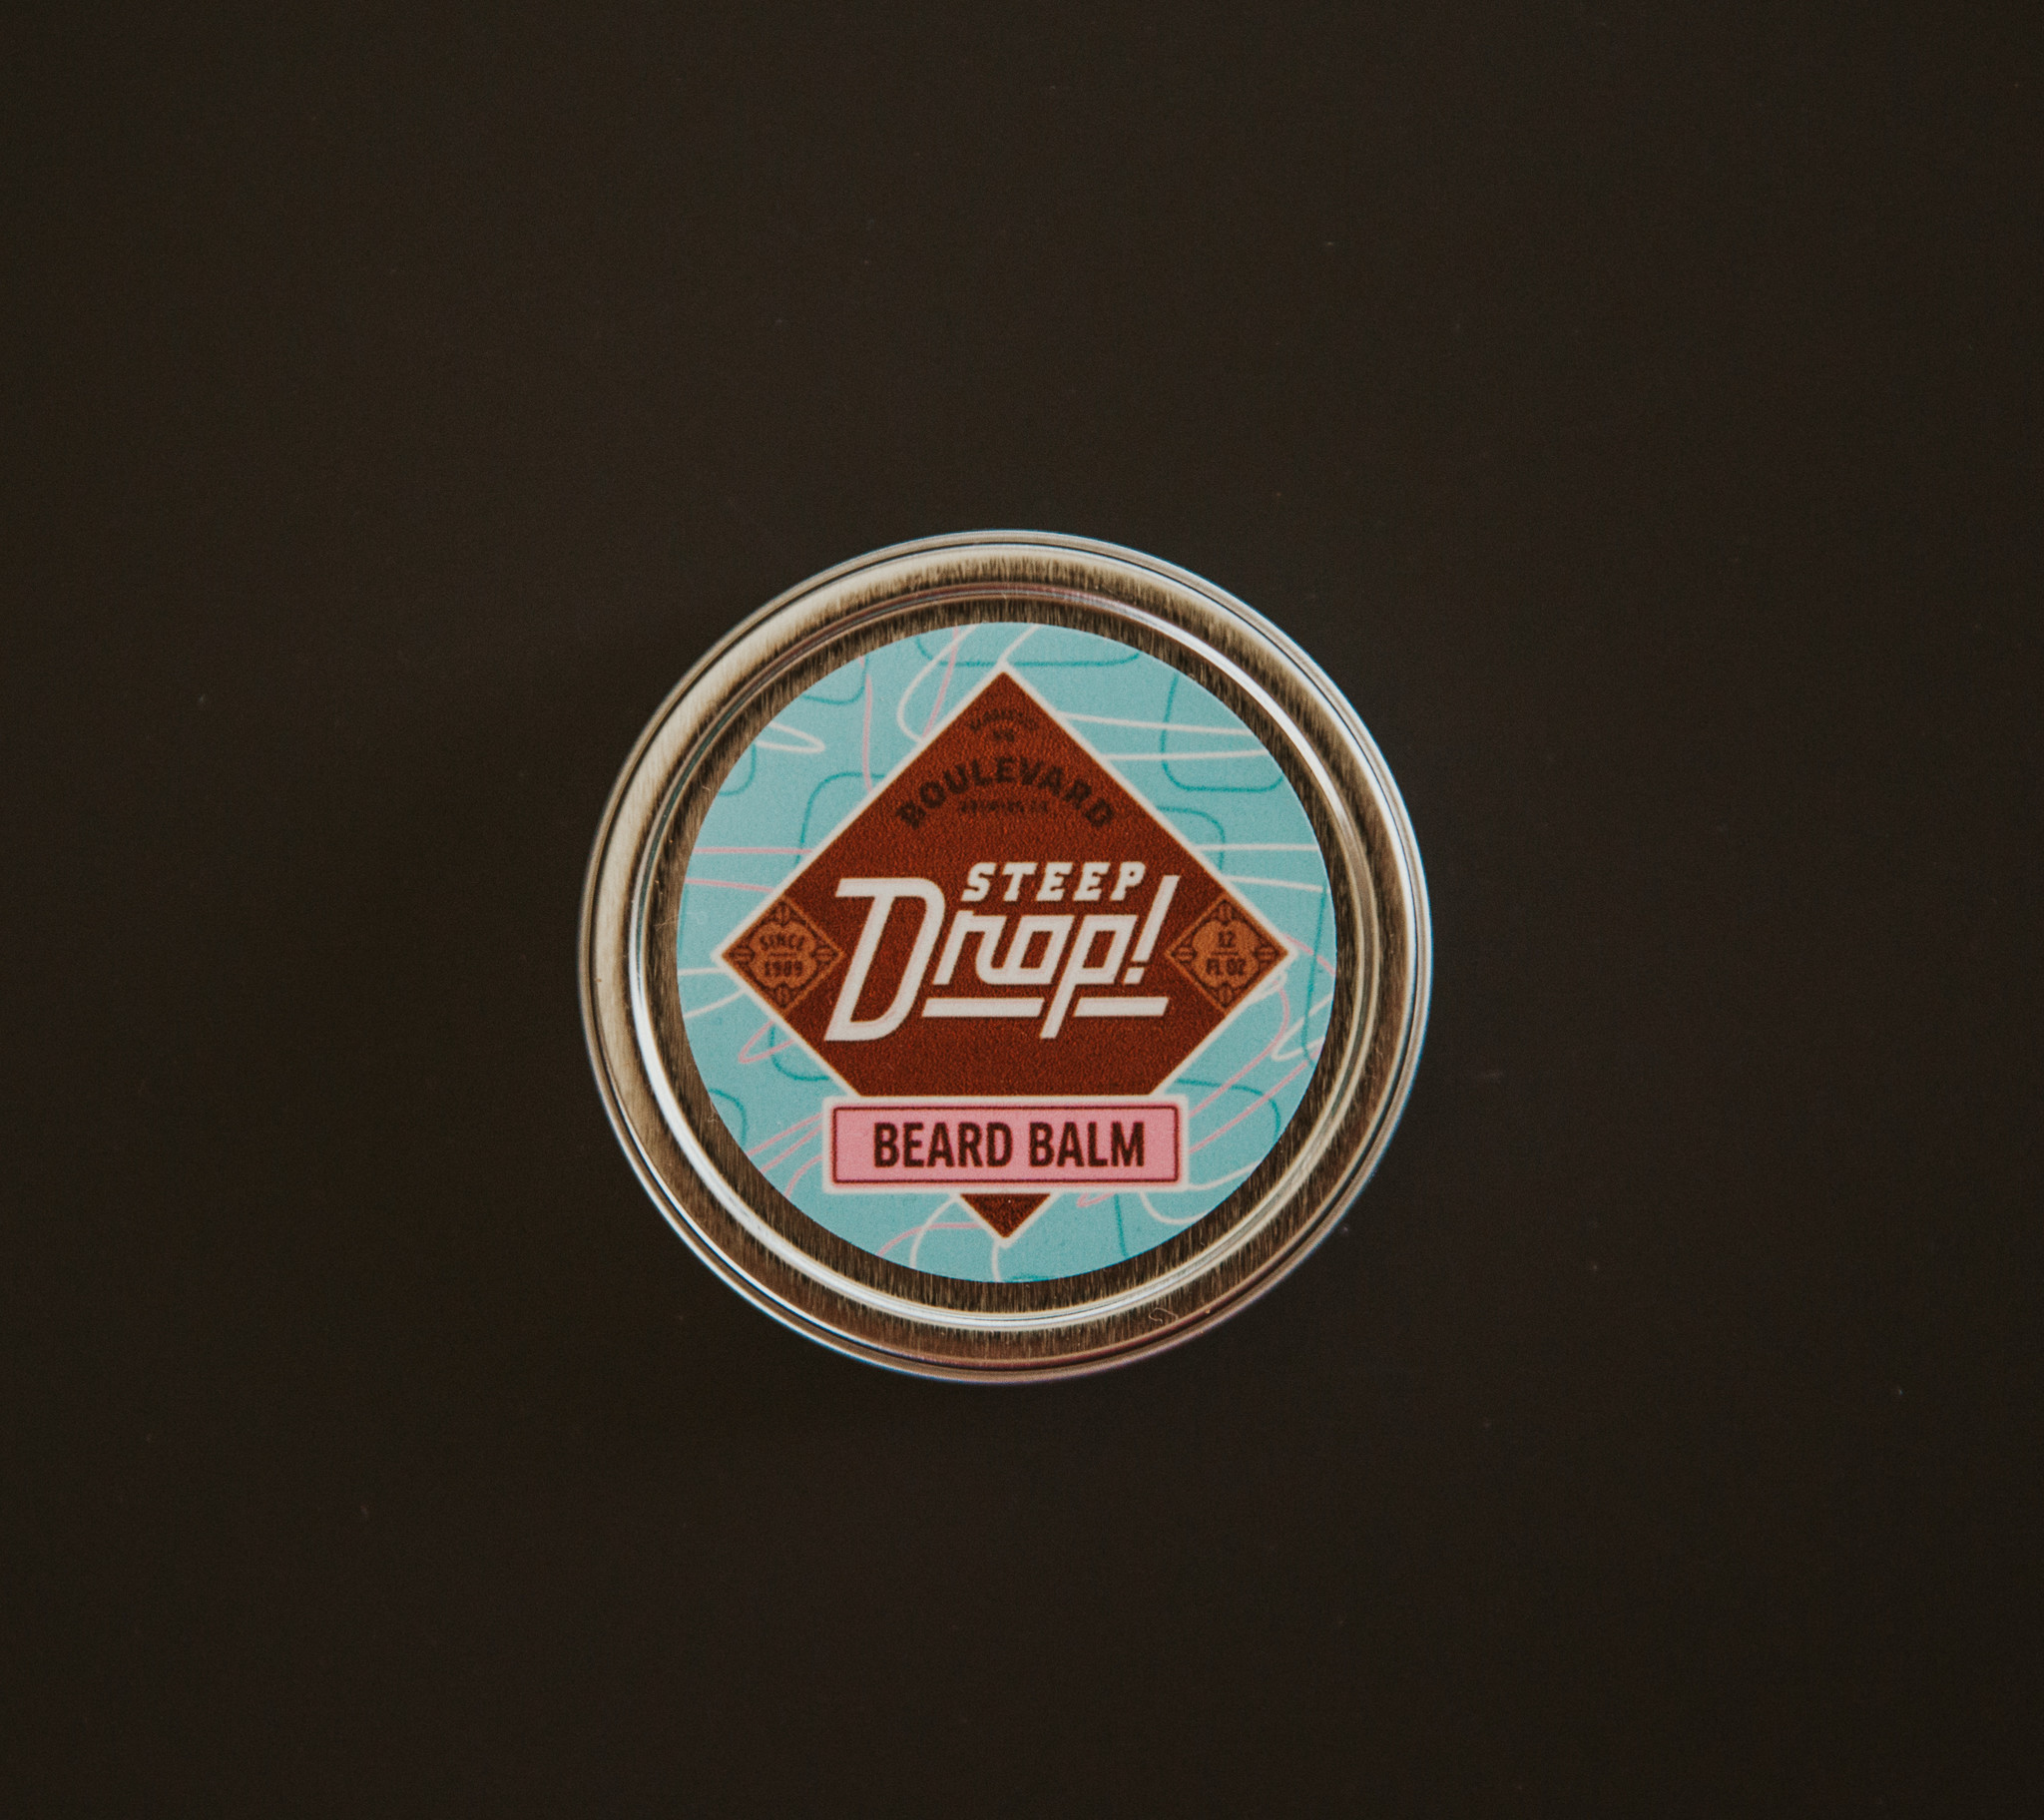 Steep Drop Beard Balm